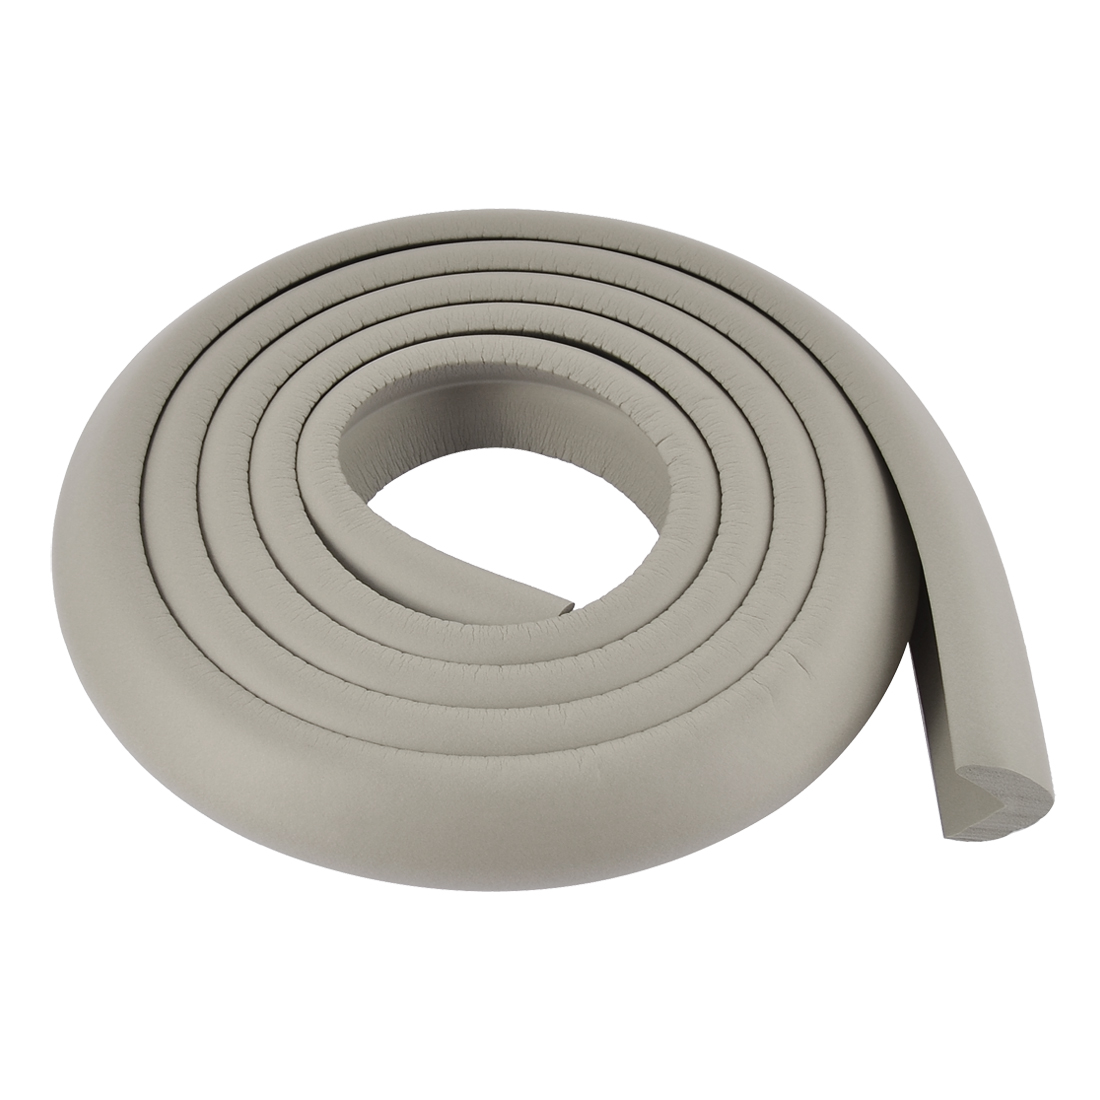 Furniture Table Corner Edge Guard Protector Cushion 2M Long Gray